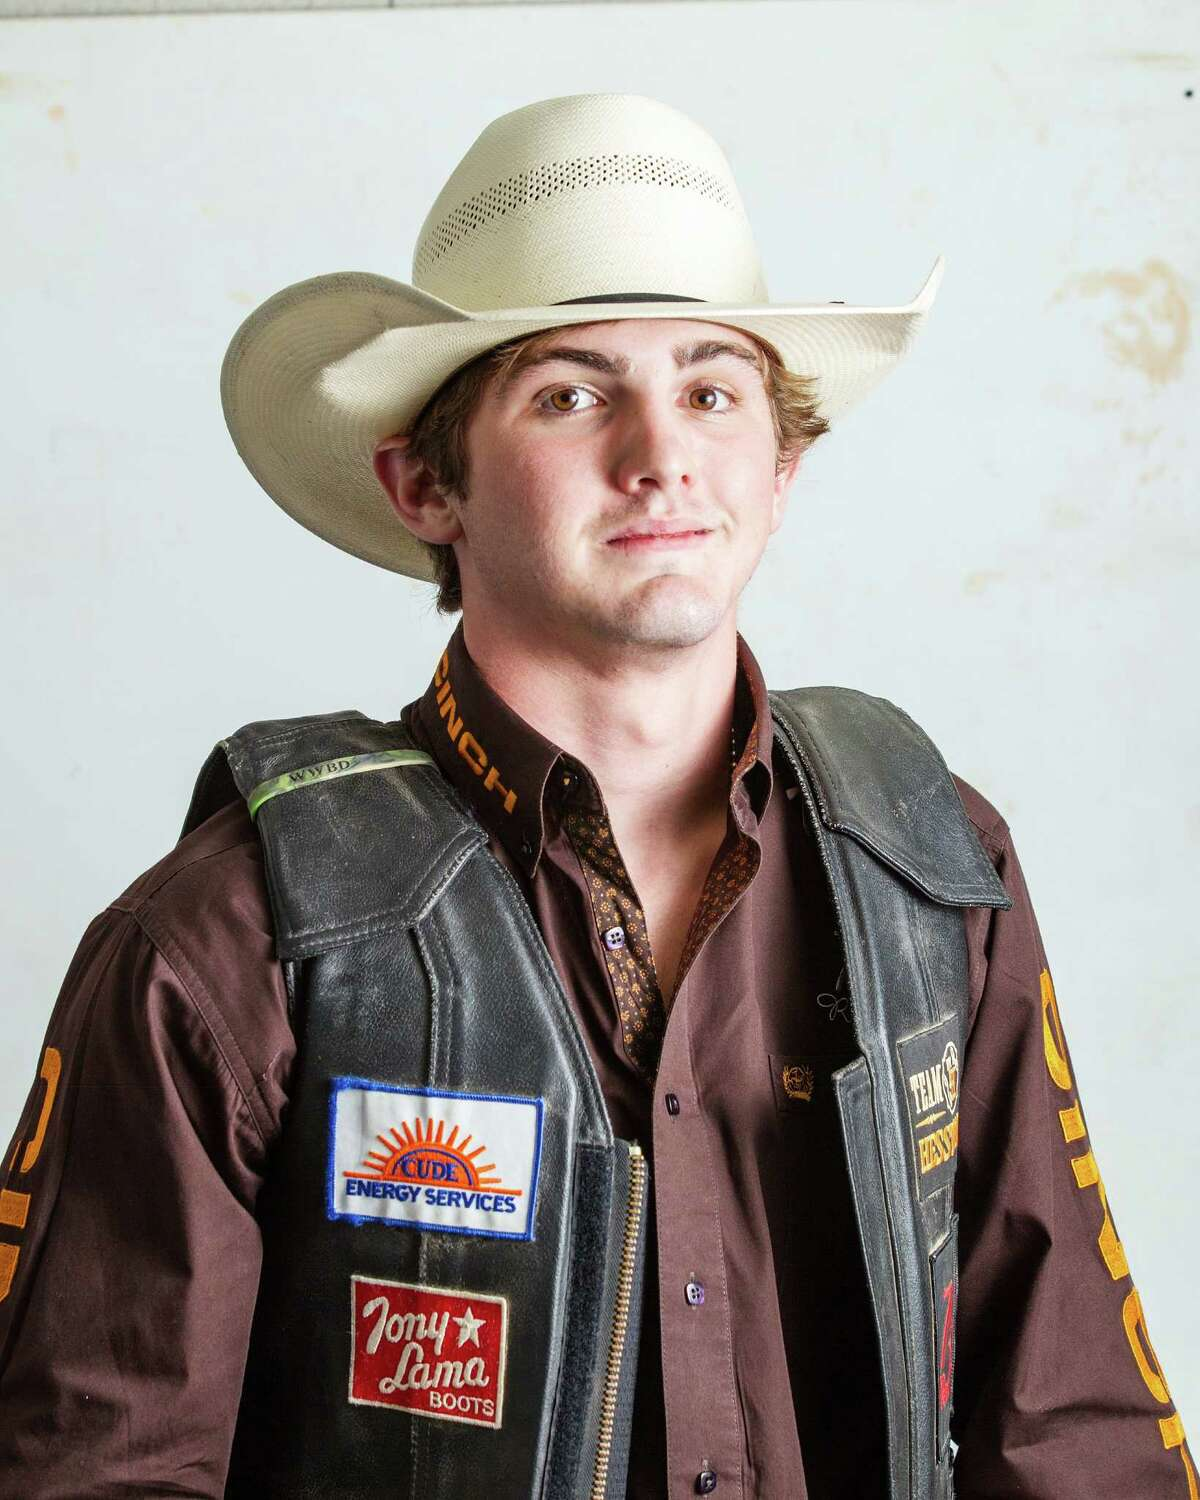 Kountze native Cody Teel conquered five events en route to being crowned the 2015 Championship Bull Riding World Champion.